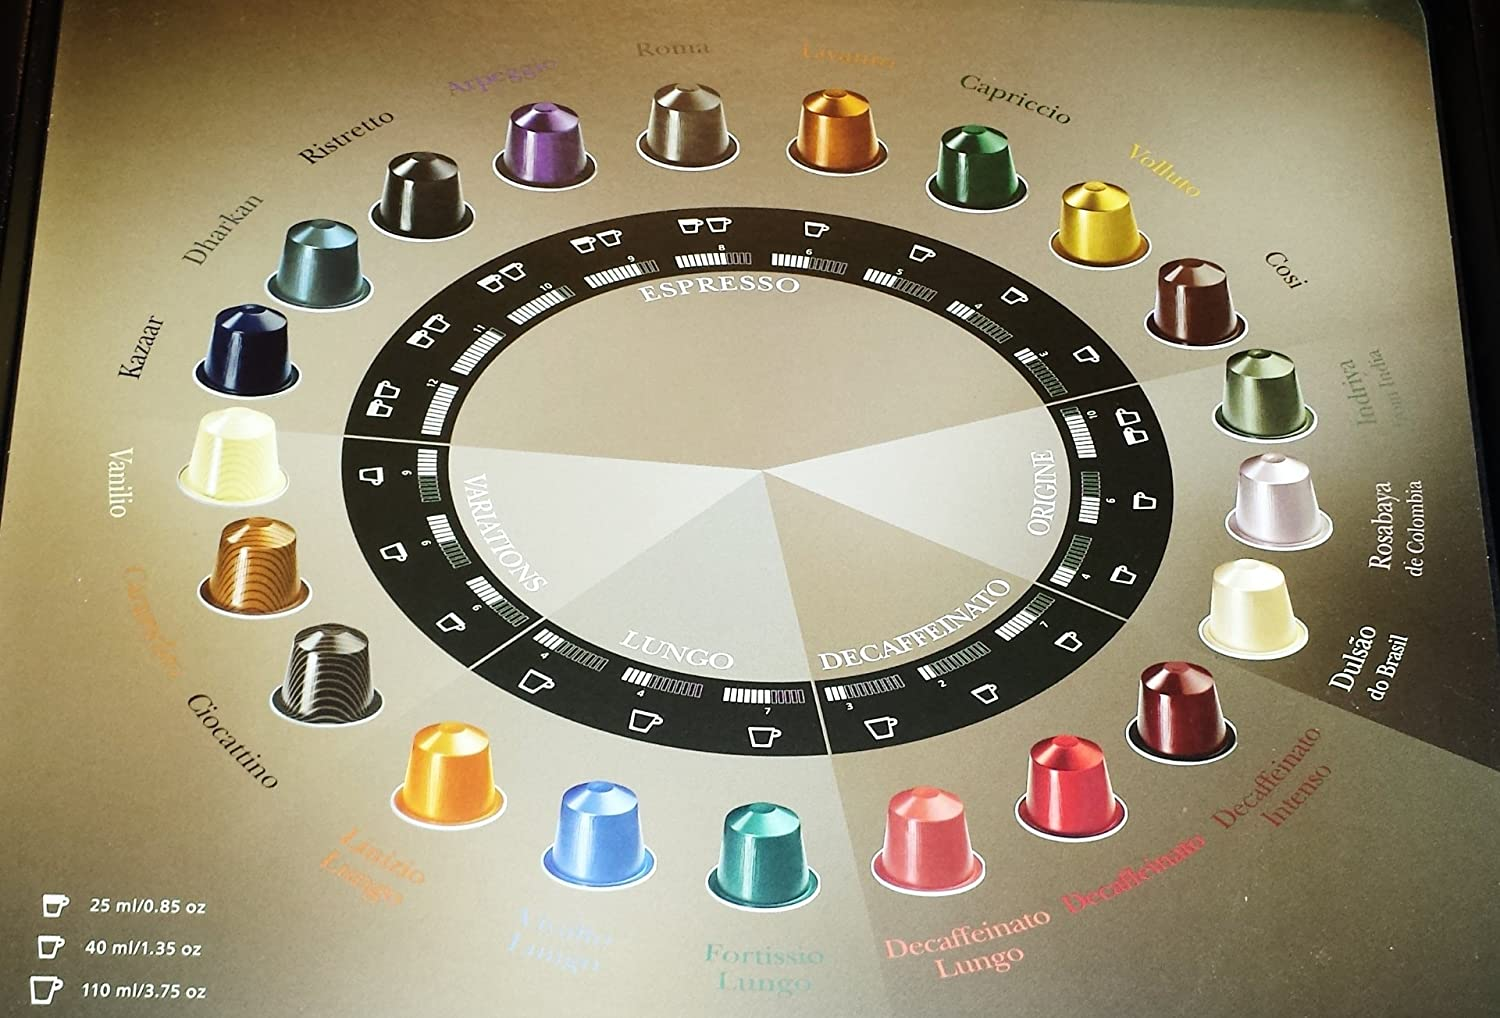 Nespresso 10 x Assorted Capsules, With Free Gift Box - Pod Holder. (Capacity 36 capsules): Amazon.es: Hogar